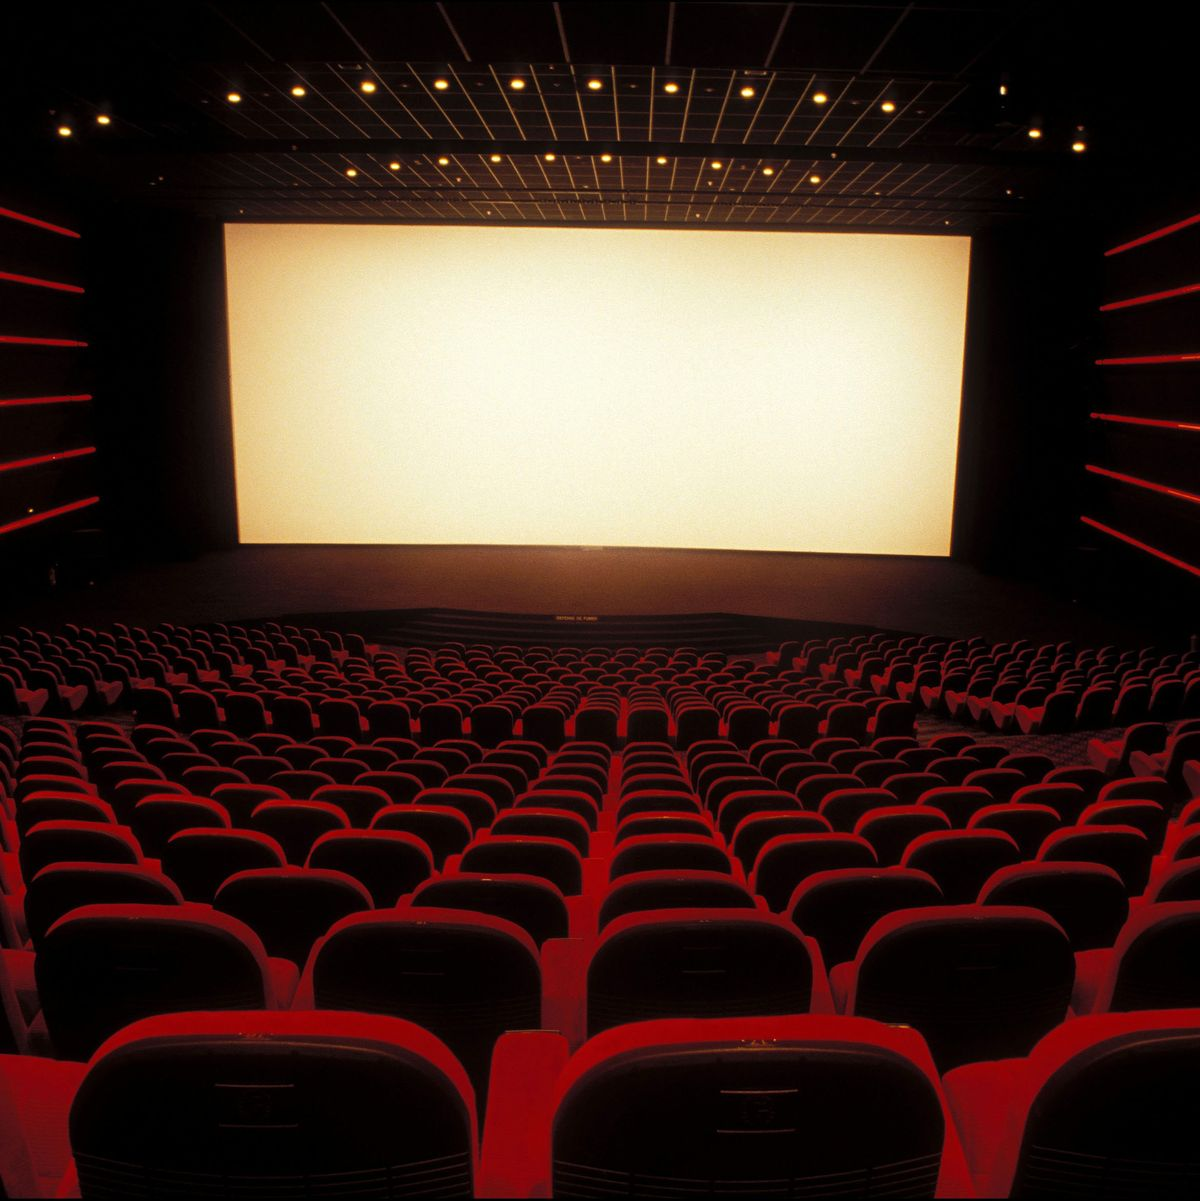 Movie Theatre Opens in new window